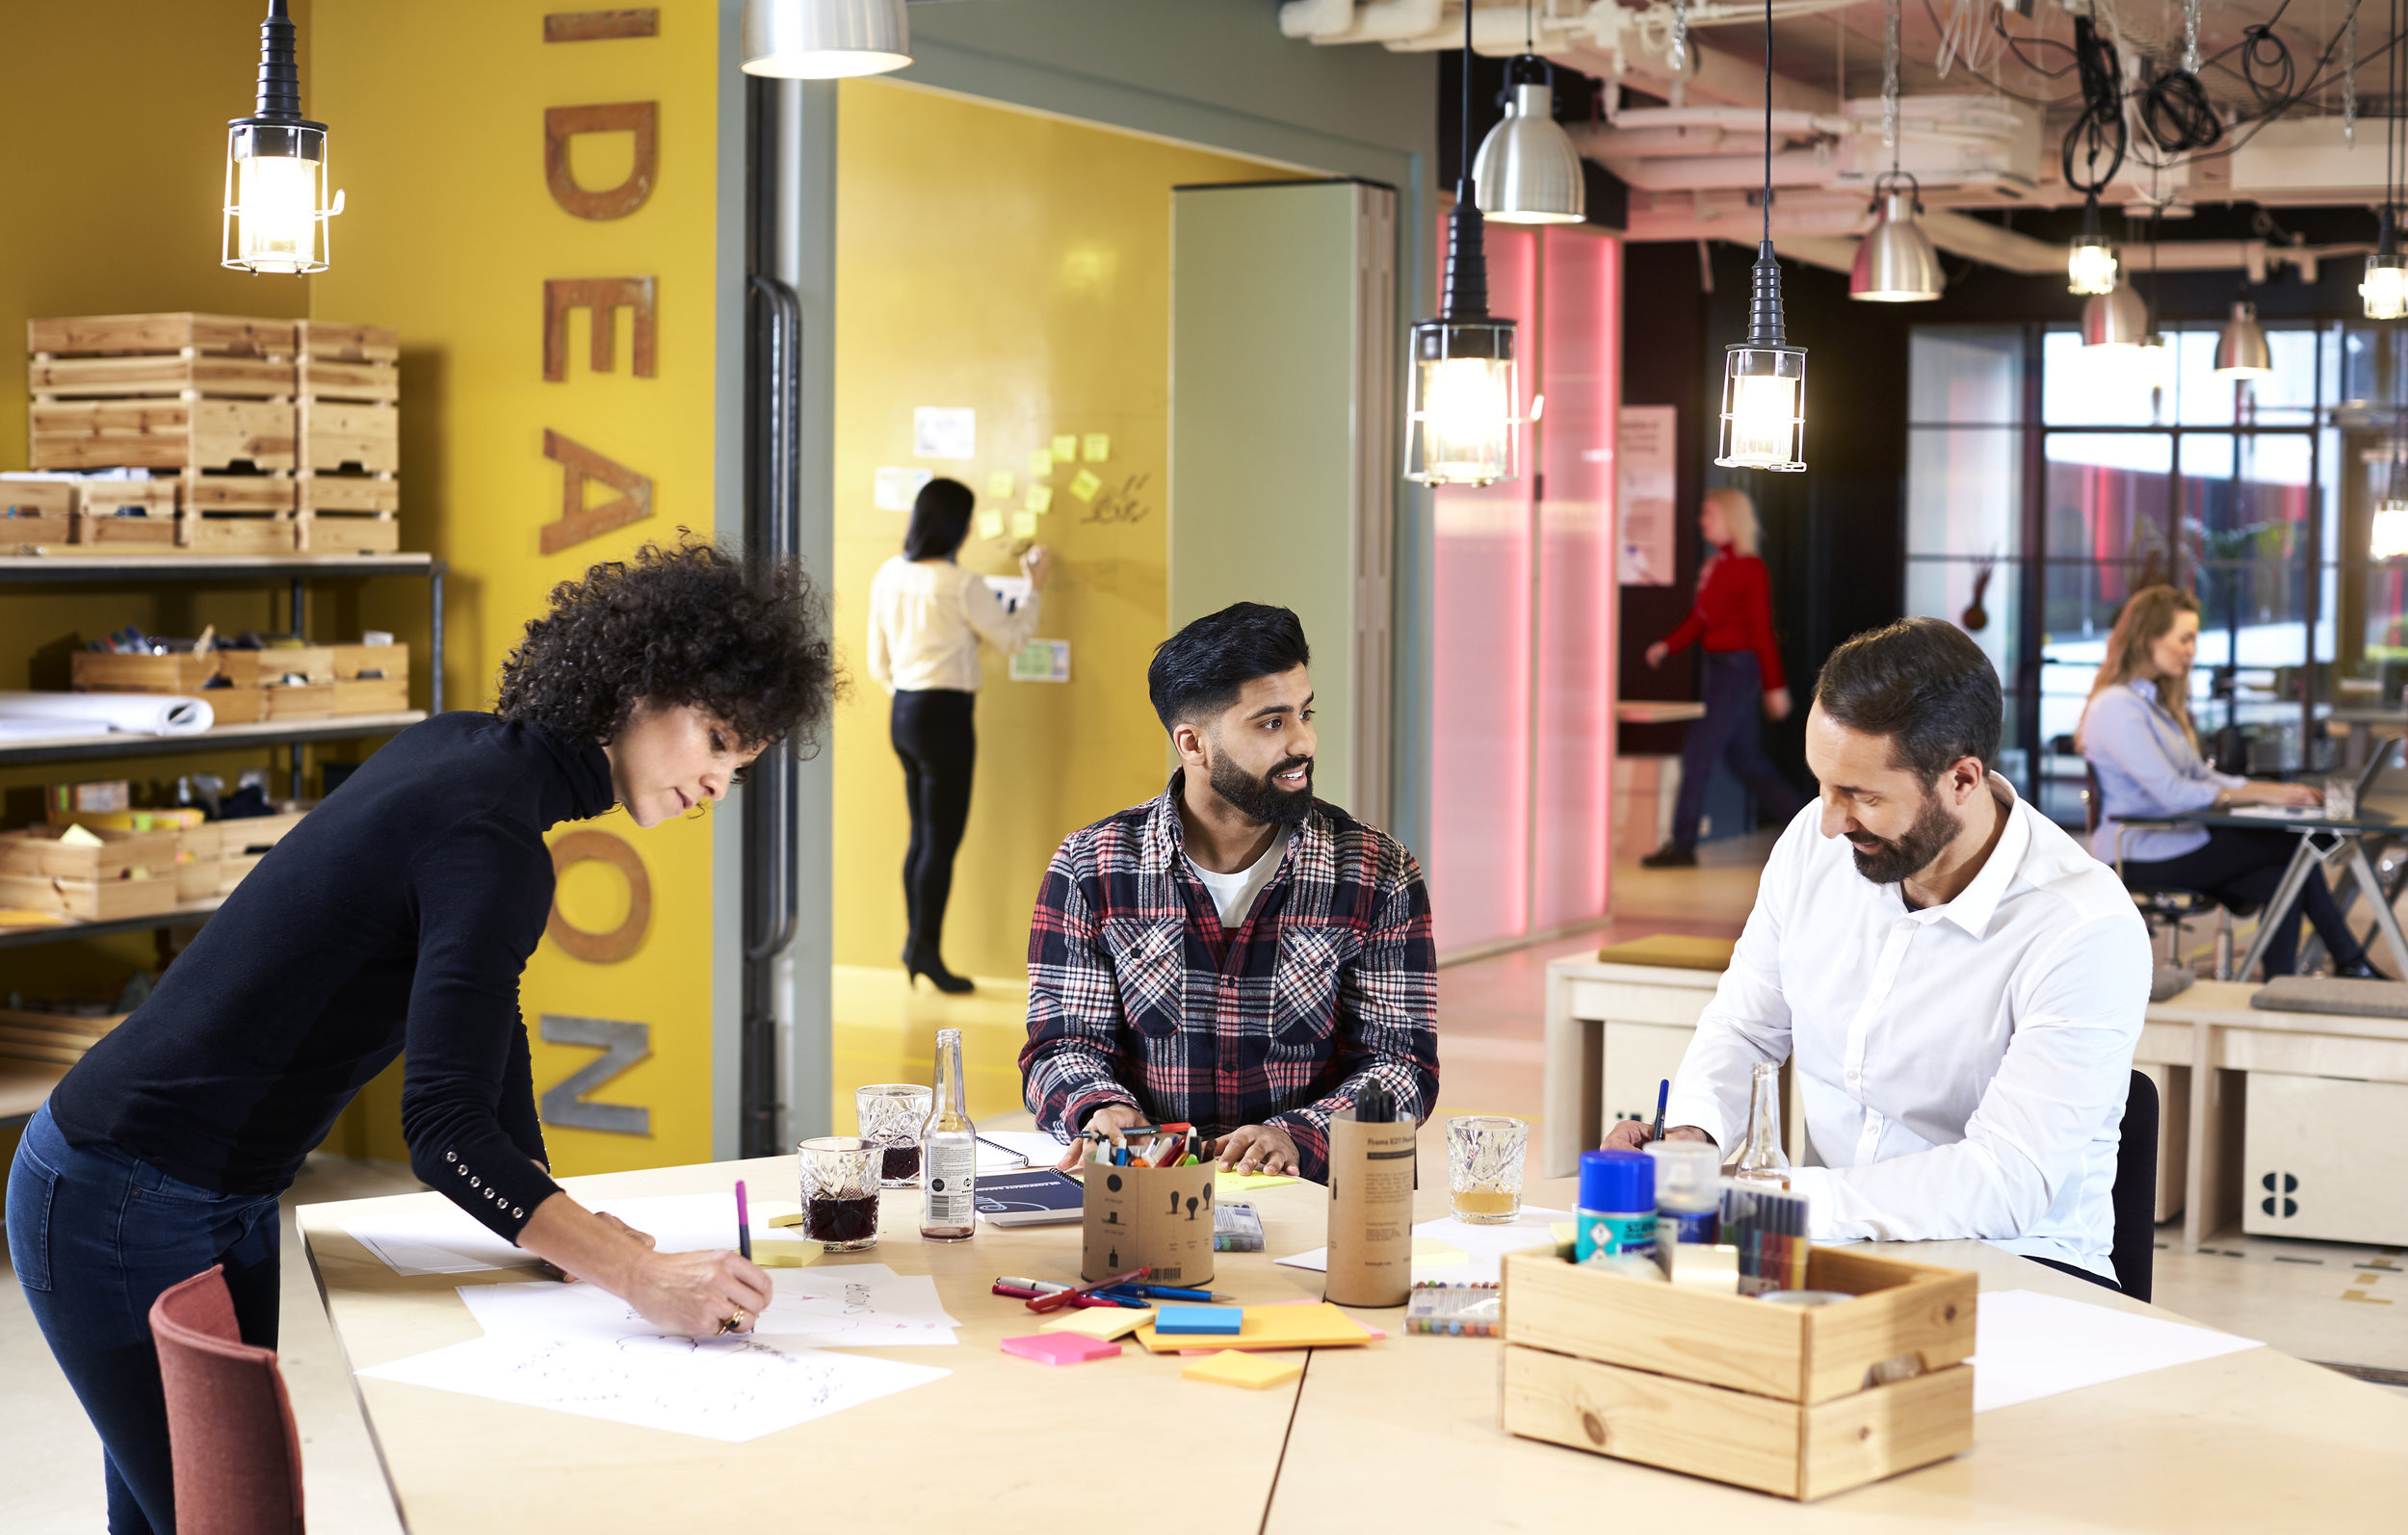 THE FUTURE OF WORK - Creating a flexible environment to support teams, agility, and leadership in the workspace and workforce.